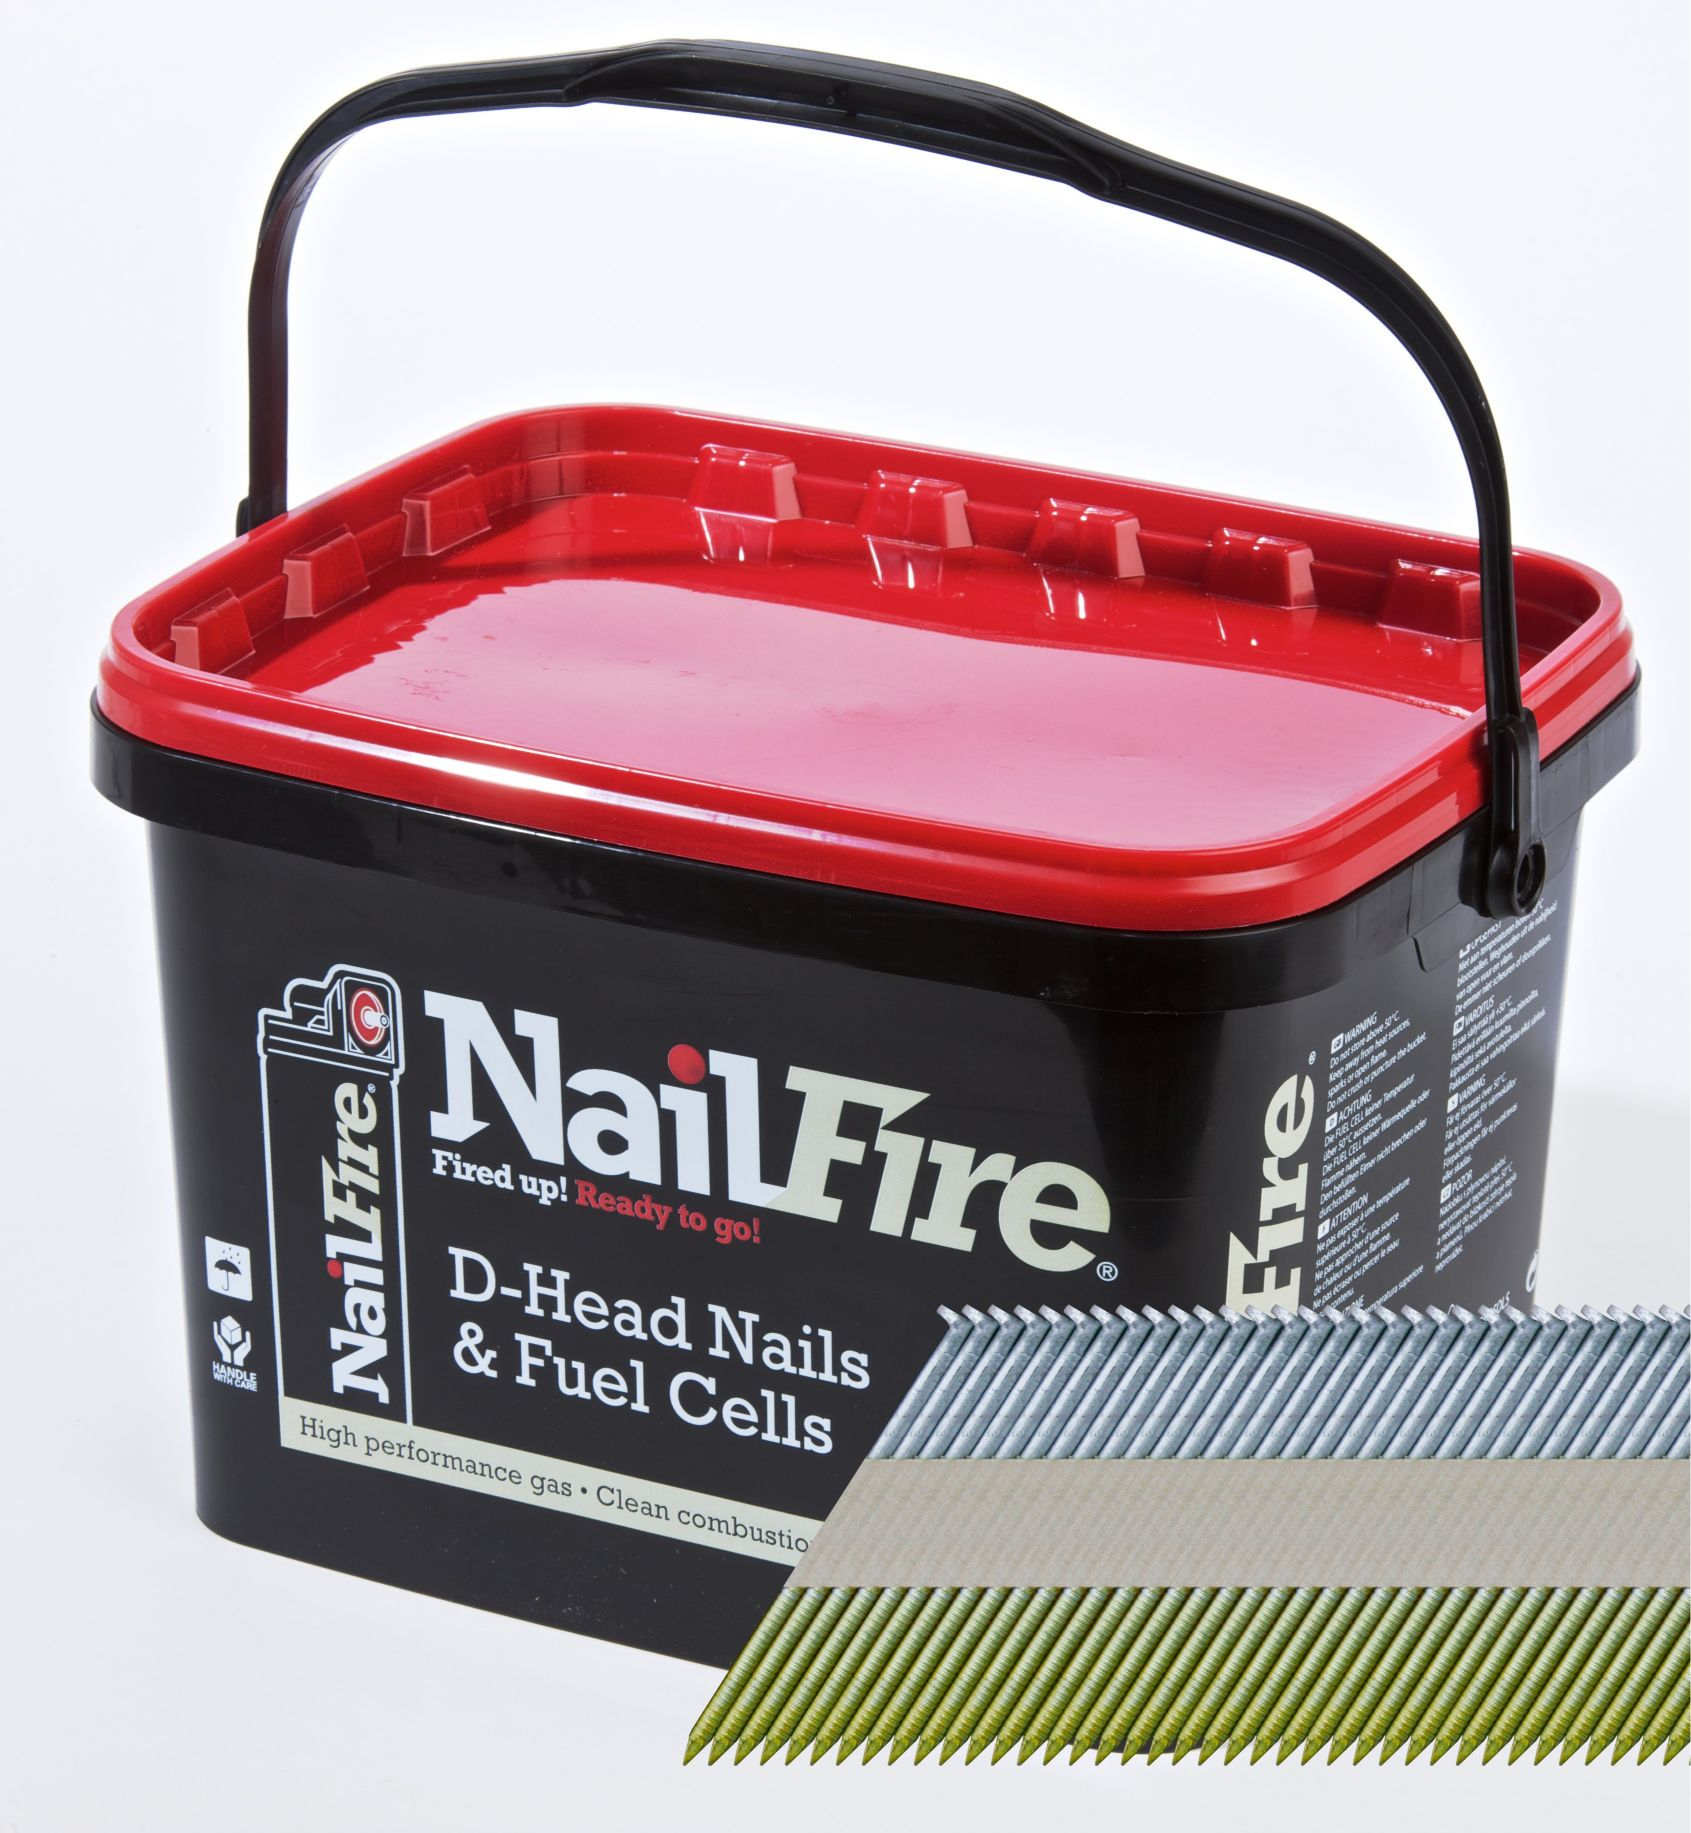 NAILFIRE 1ST FIX E-GALV SMOOTH NAIL & FUEL PACK 90MM (TUB OF 2000)